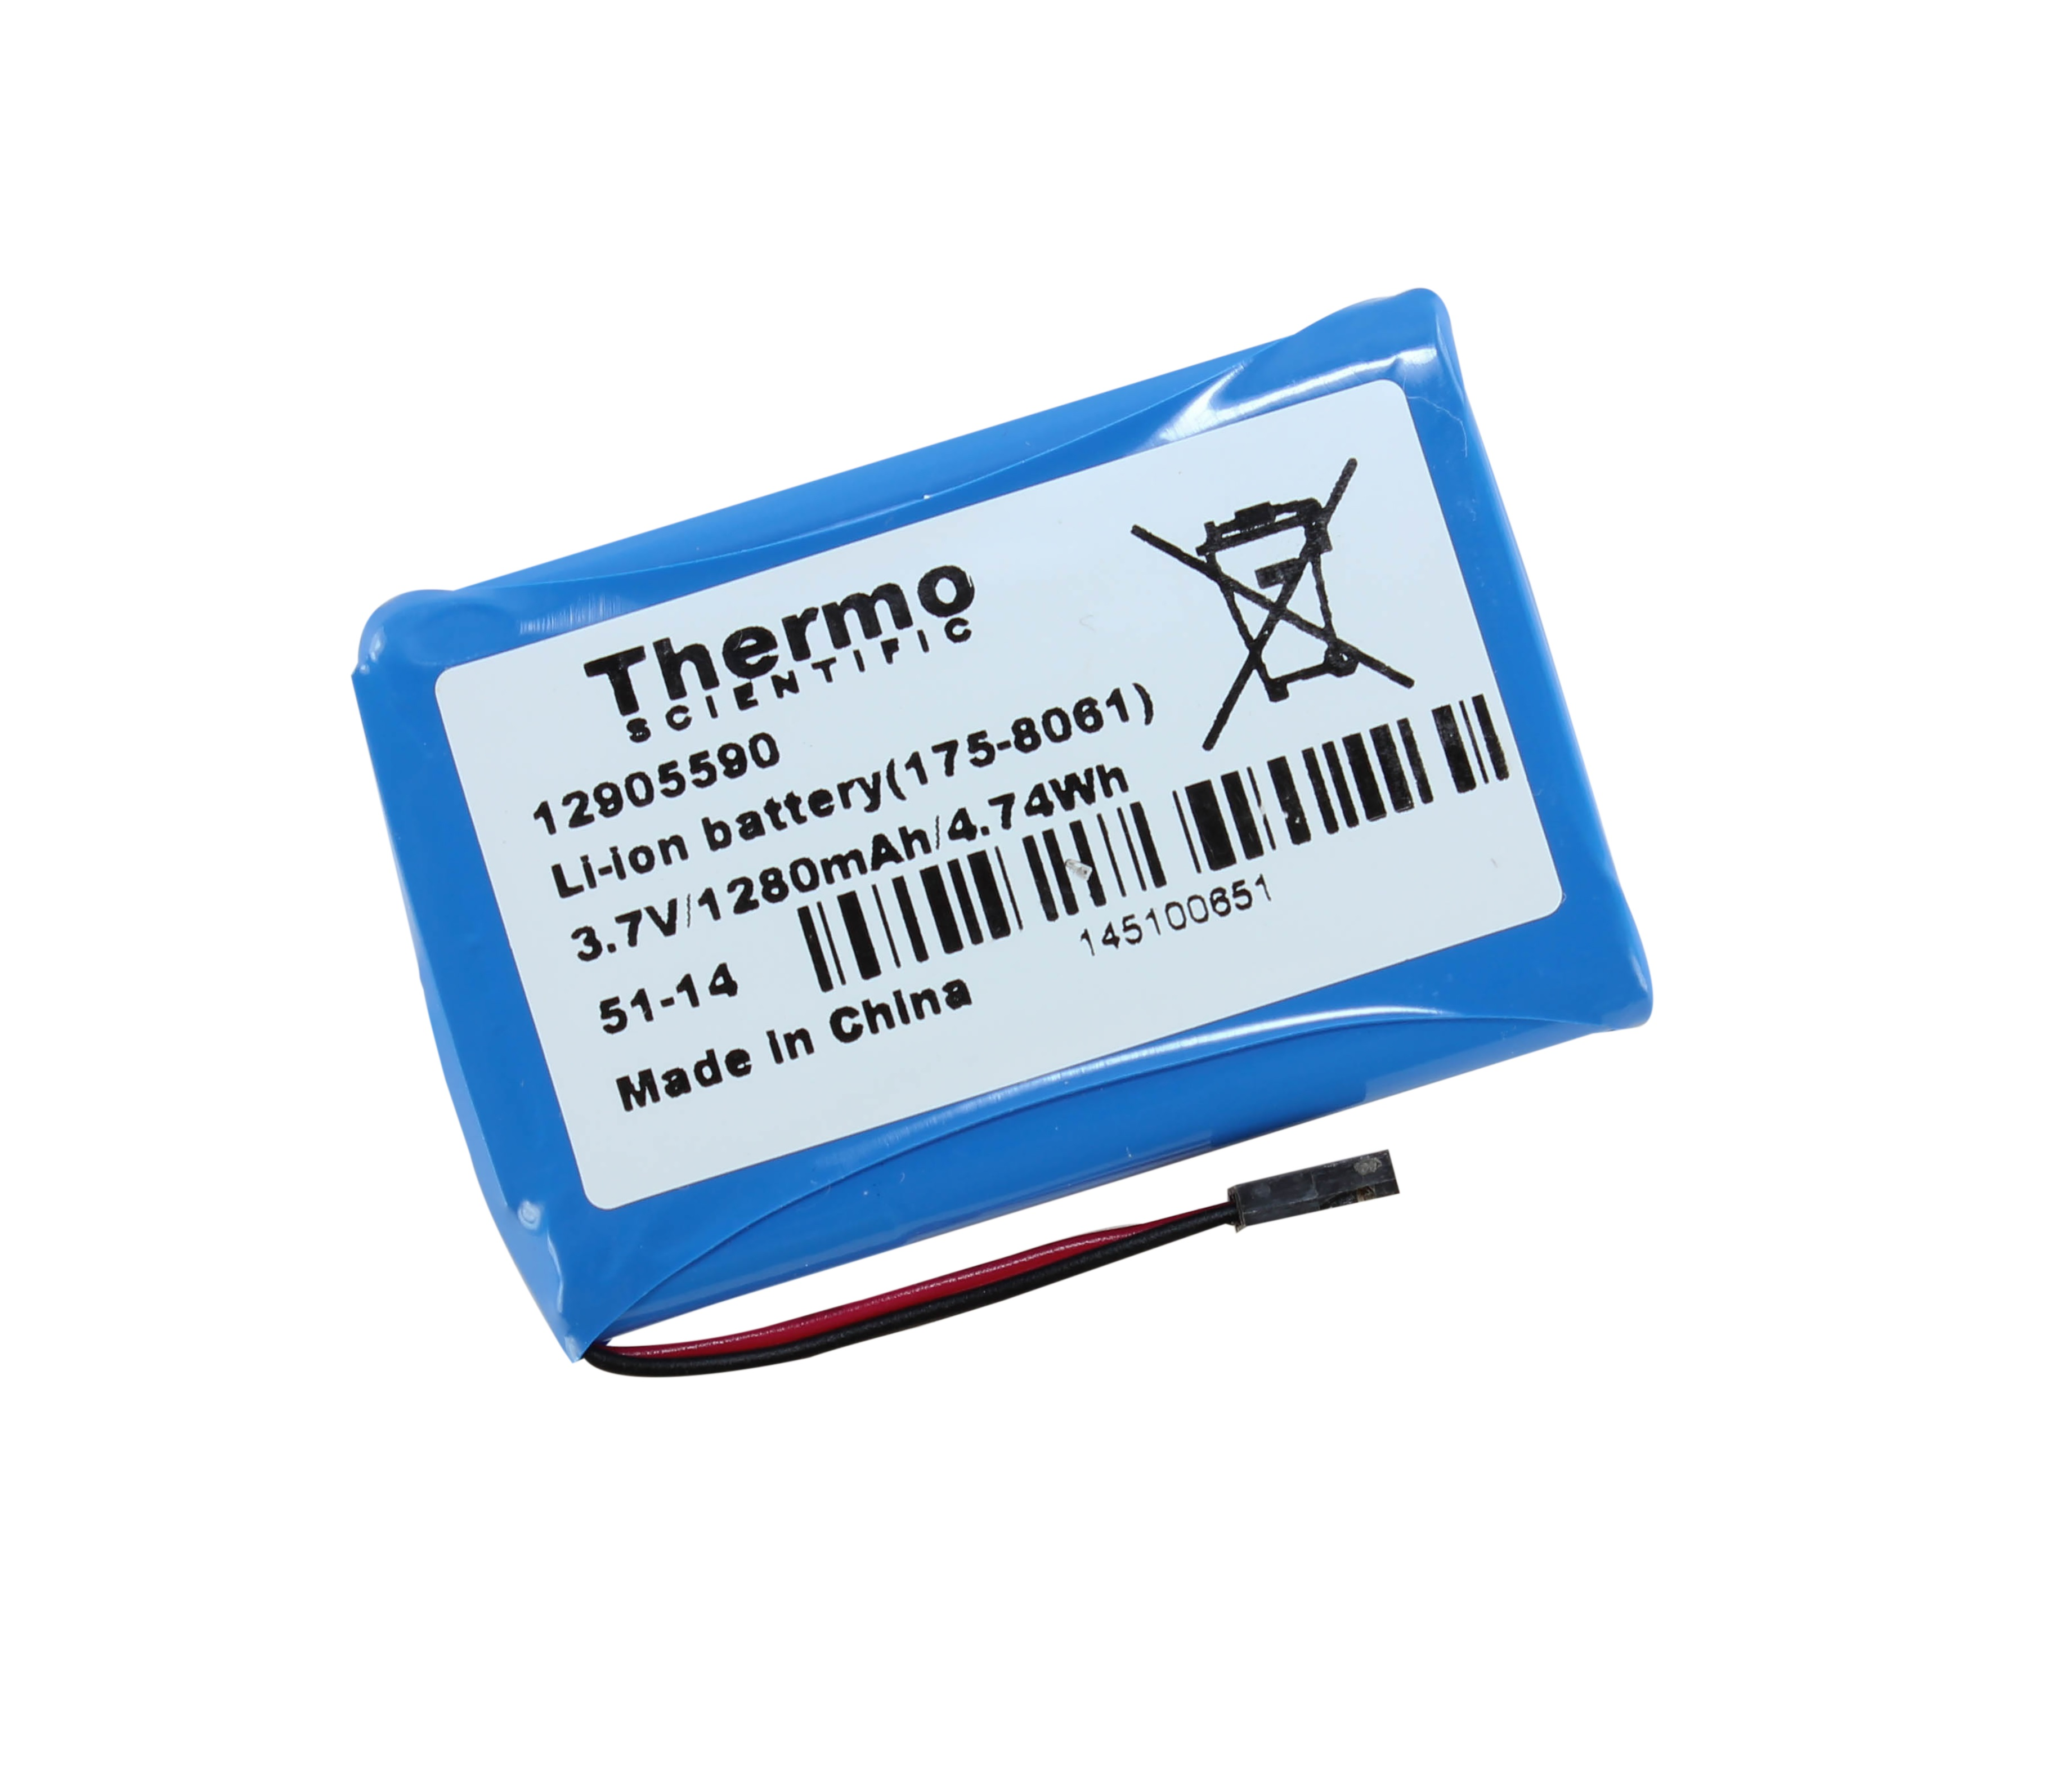 E1 Clip Tip Lithium-ion Battery, Single and Multichannel (Thermo Scientific)